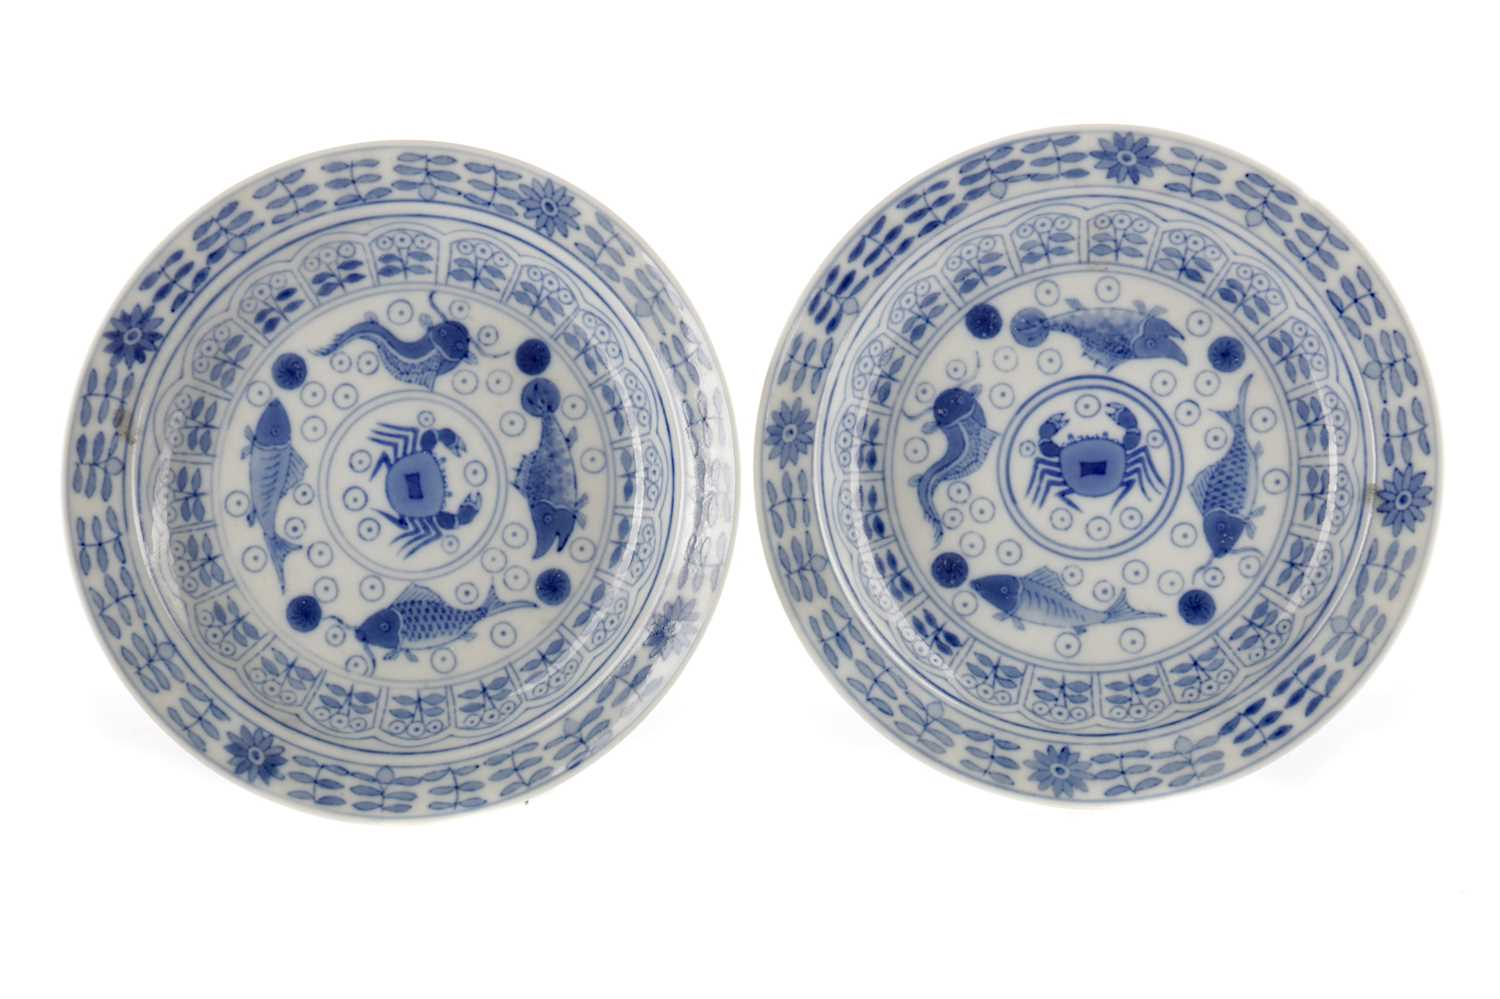 Lot 844 - A PAIR OF 19TH CENTURY CHINESE BLUE AND WHITE PLATES